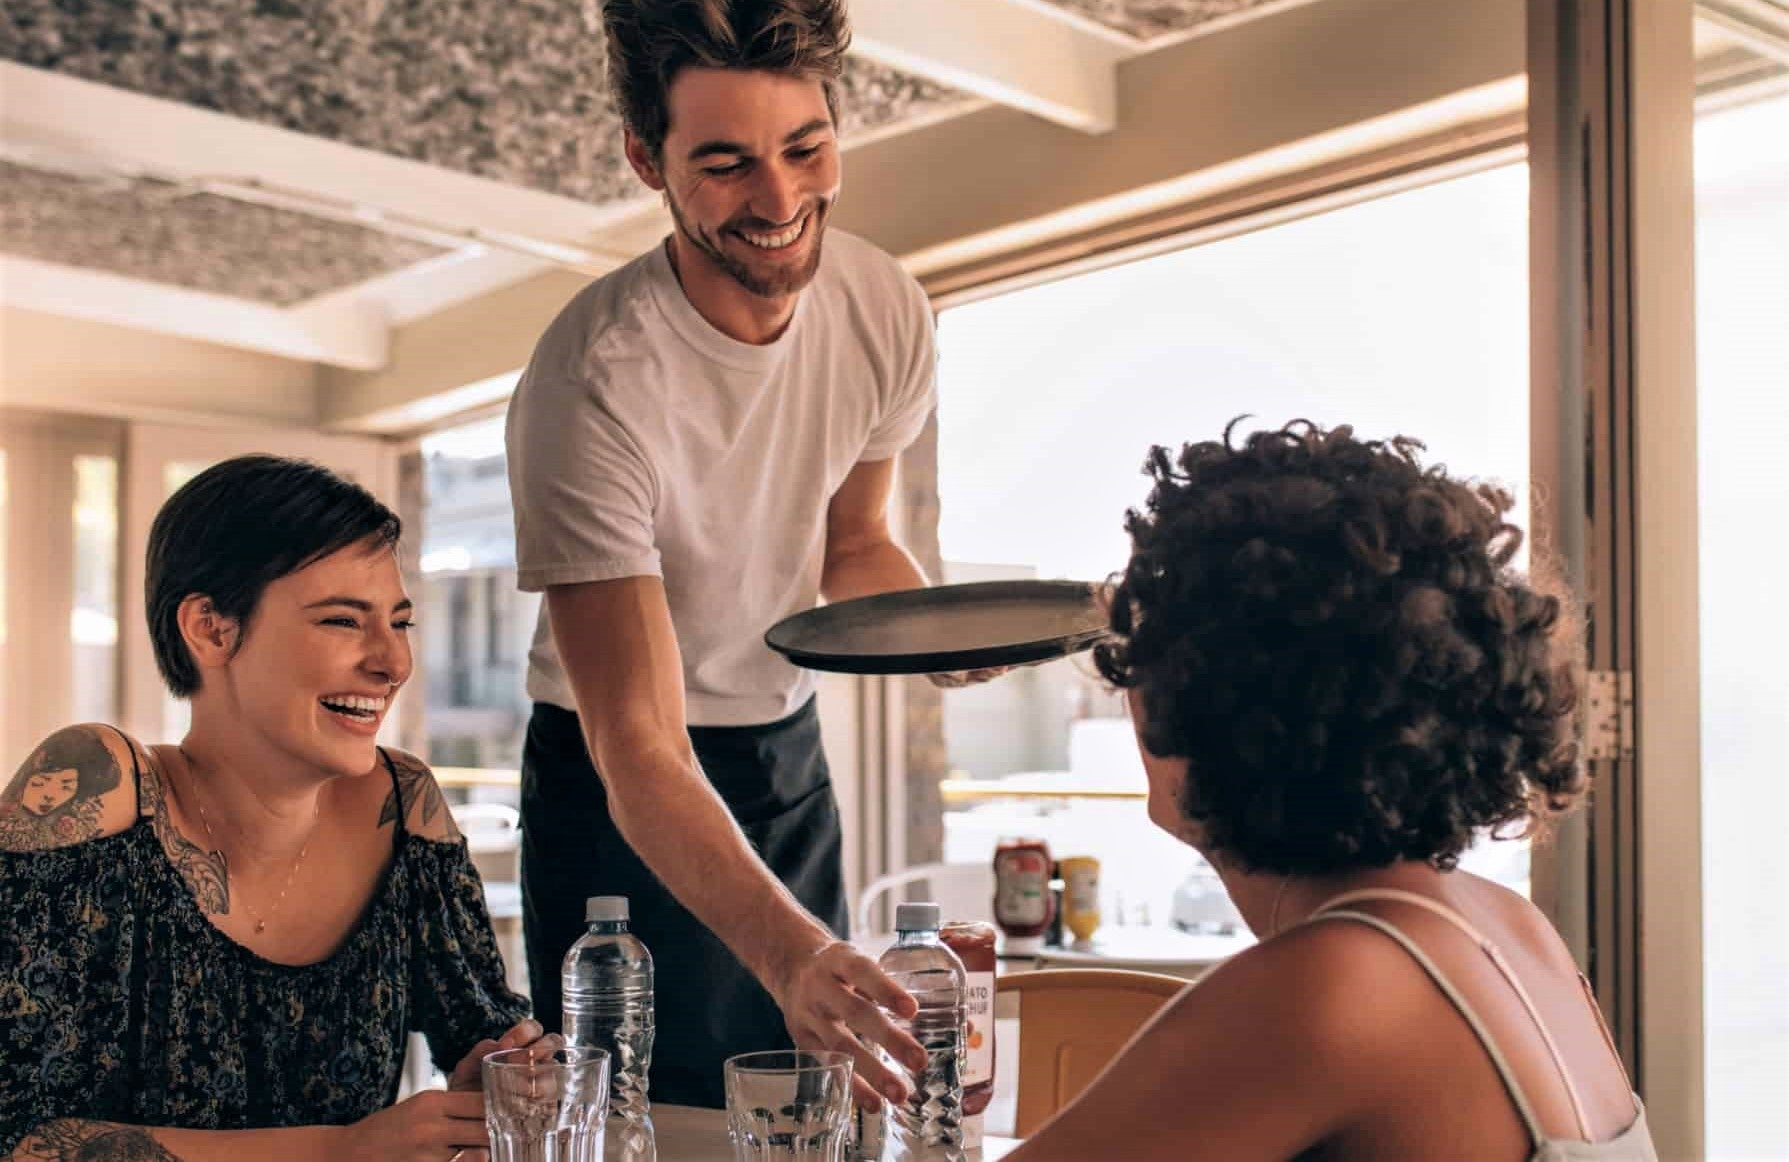 attractive young waiter in t-shirt serves two women drink at restaurant table